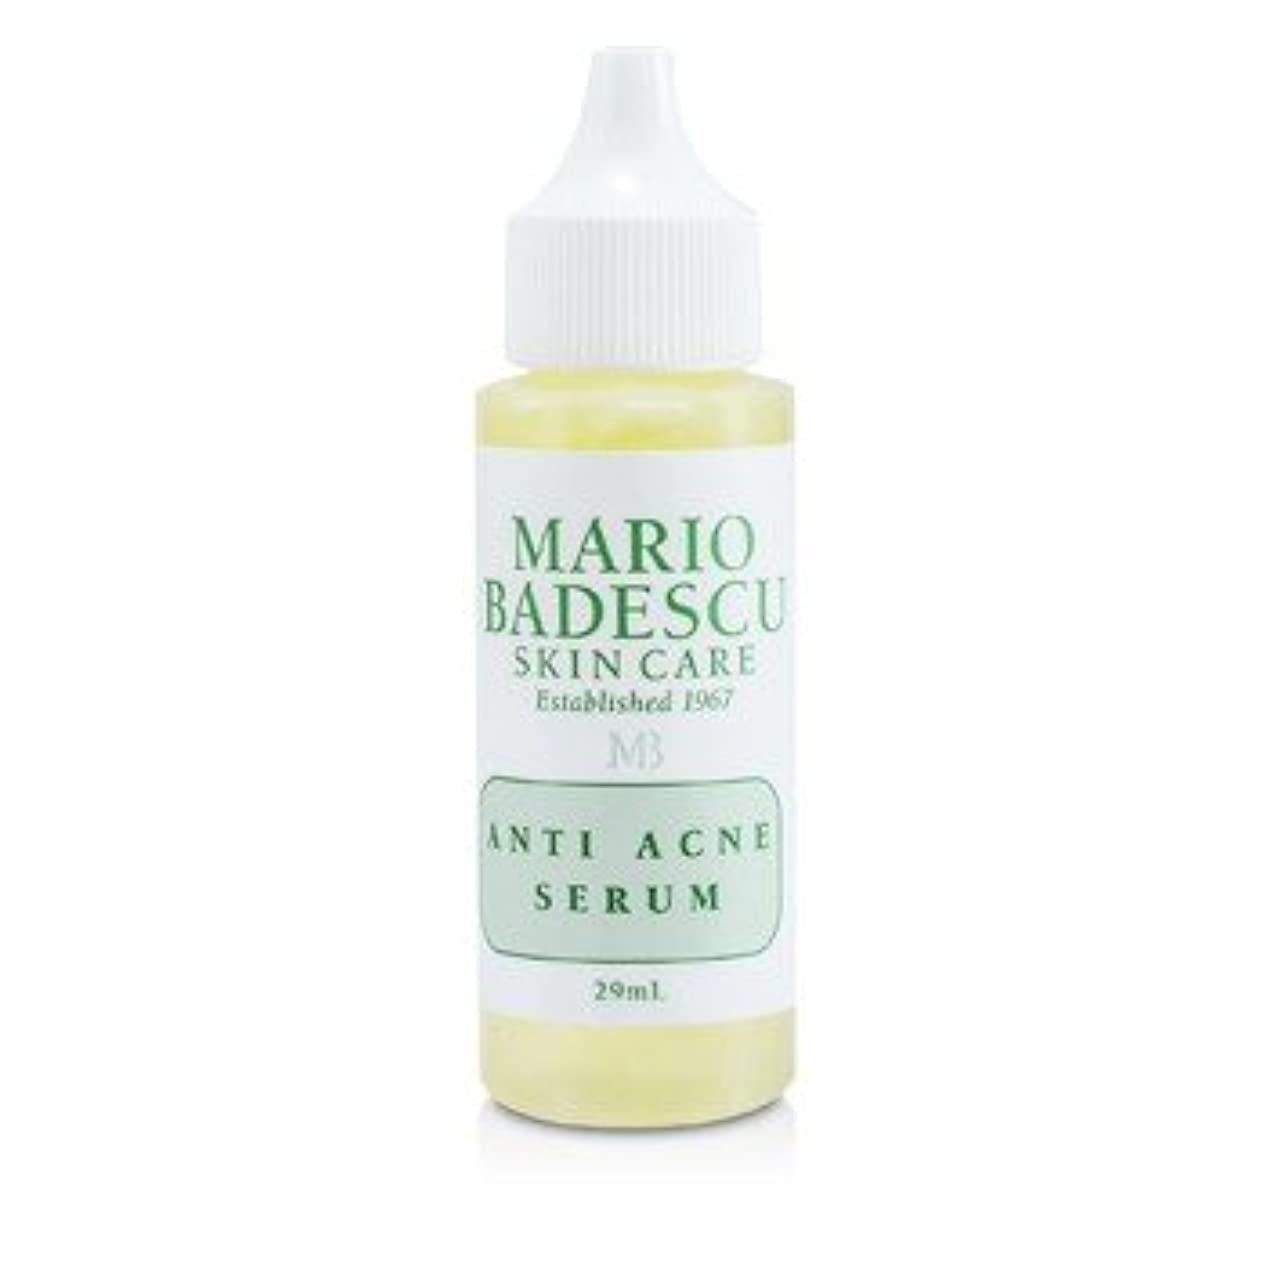 助手膨張する征服[Mario Badescu] Anti-Acne Serum - For Combination/ Oily Skin Types 29ml/1oz